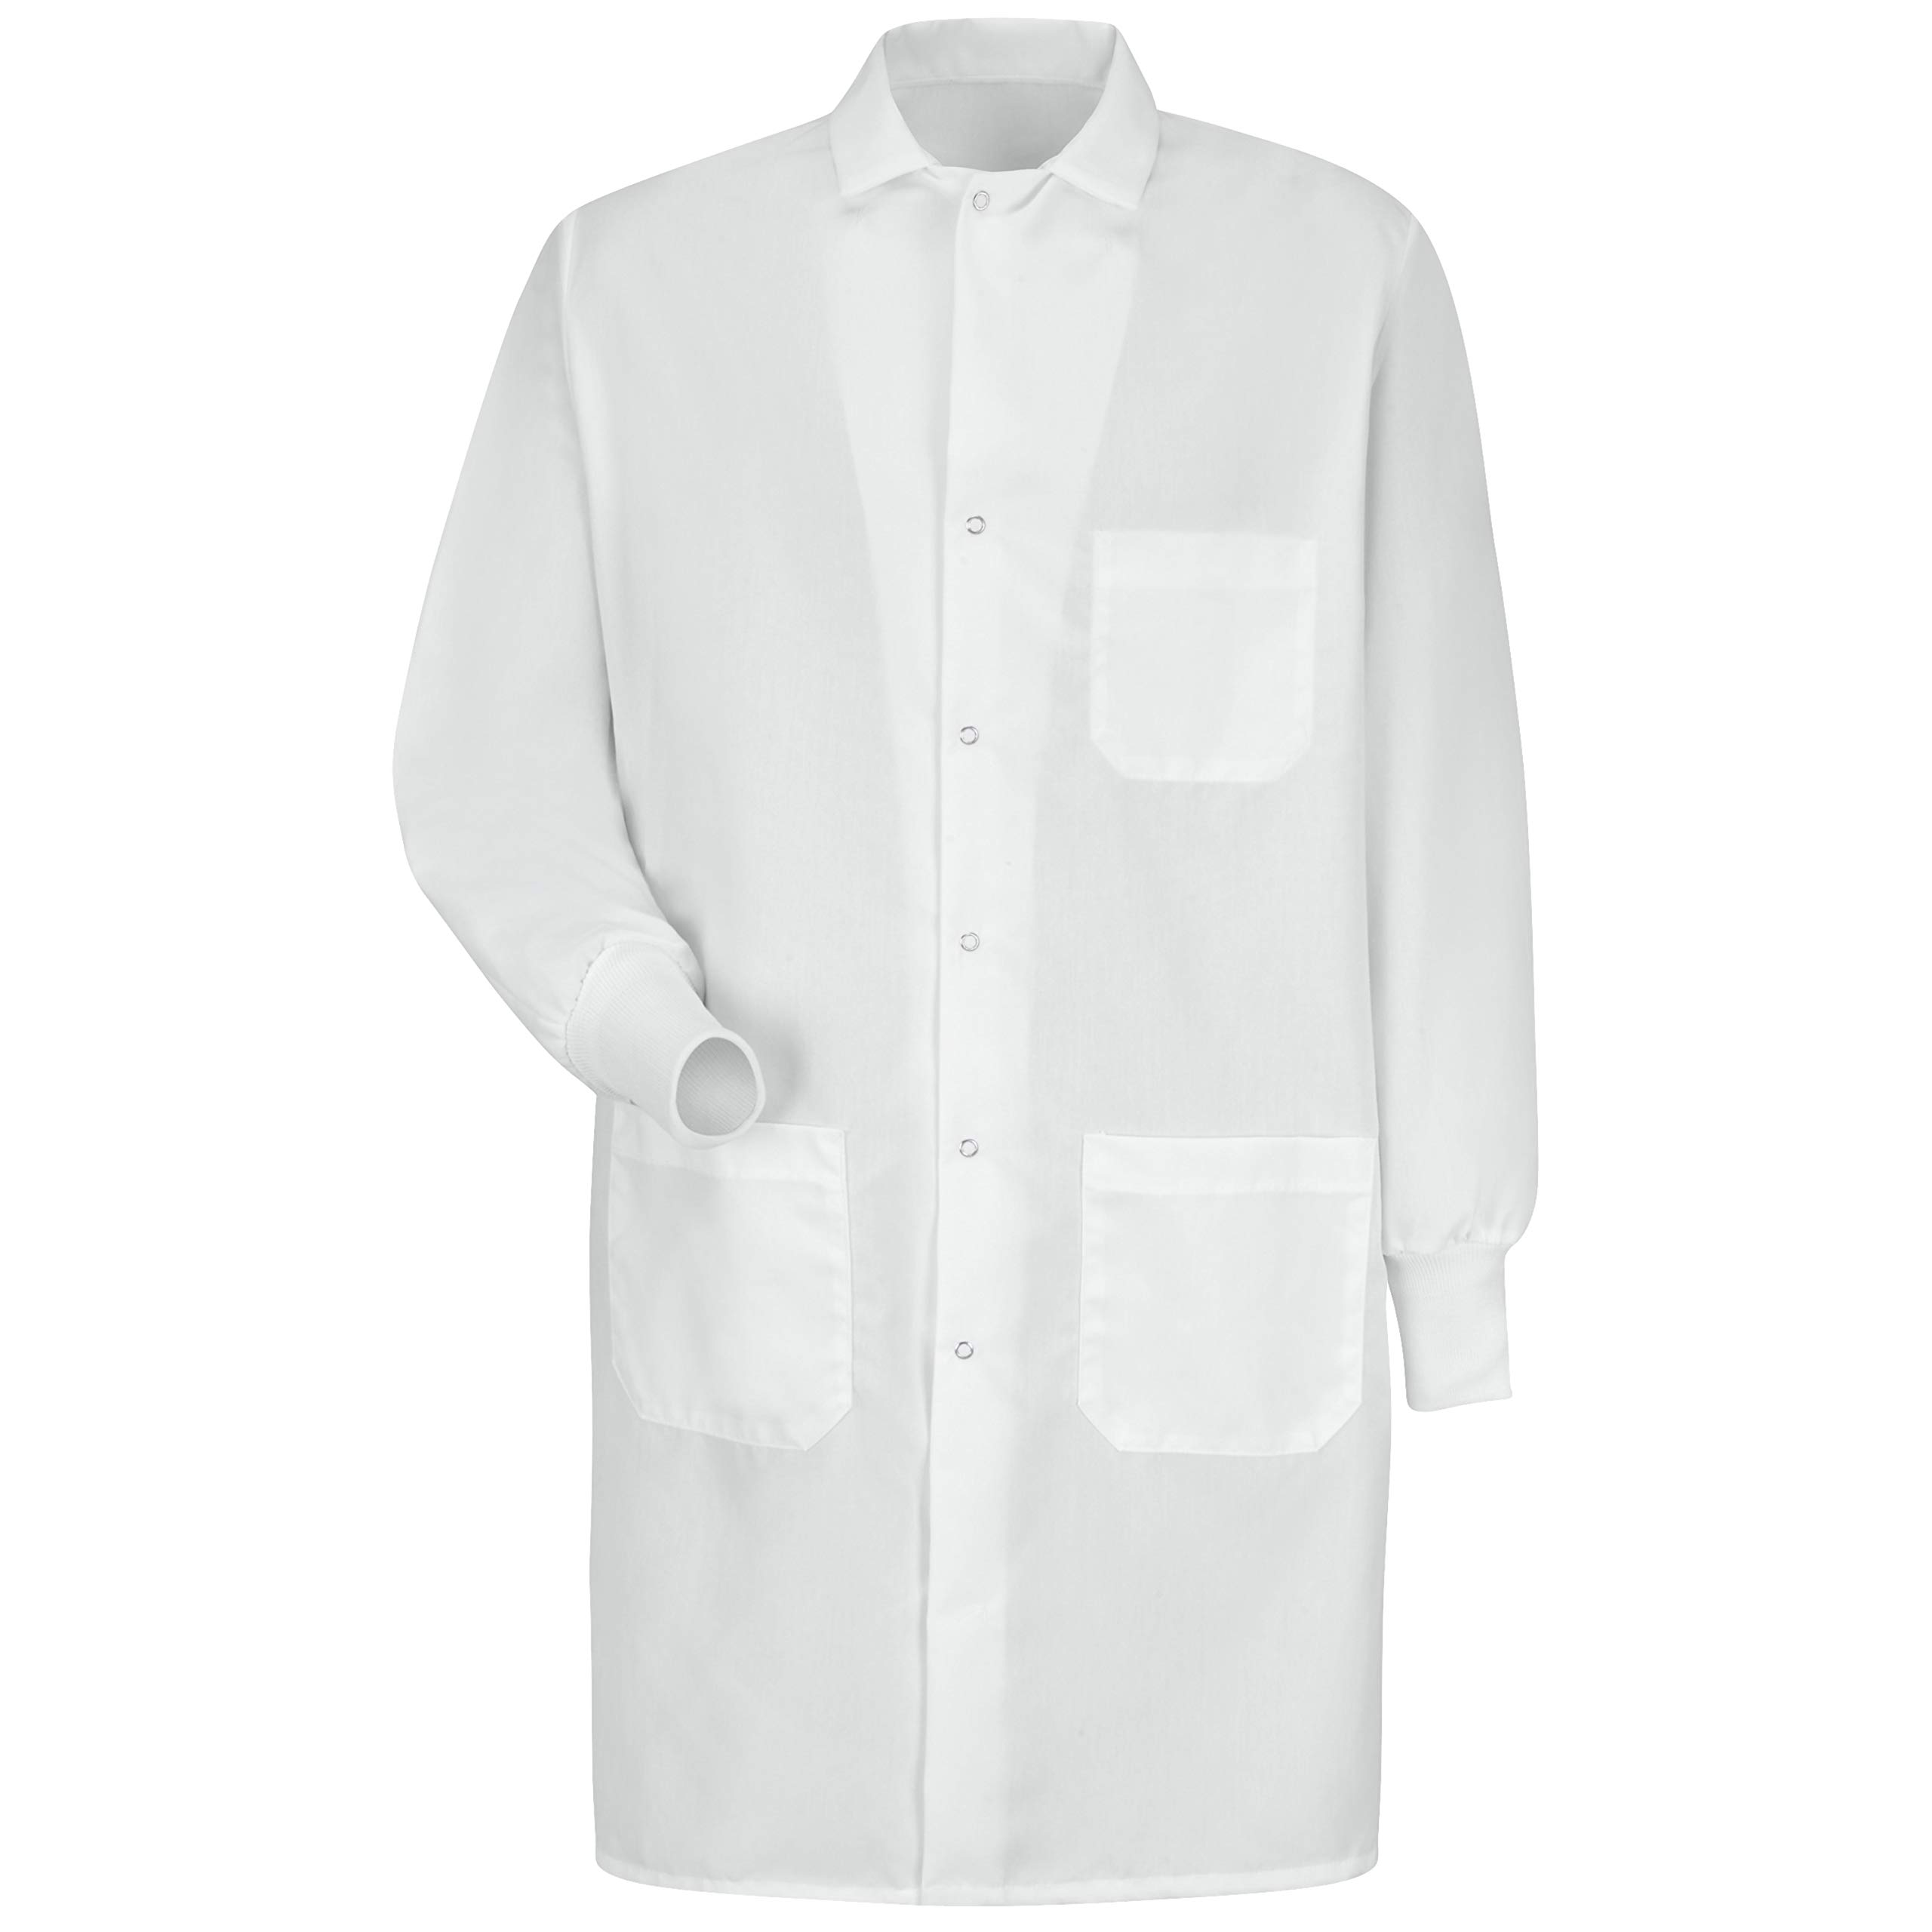 Red Kap Specialized Cuffed Lab Coat